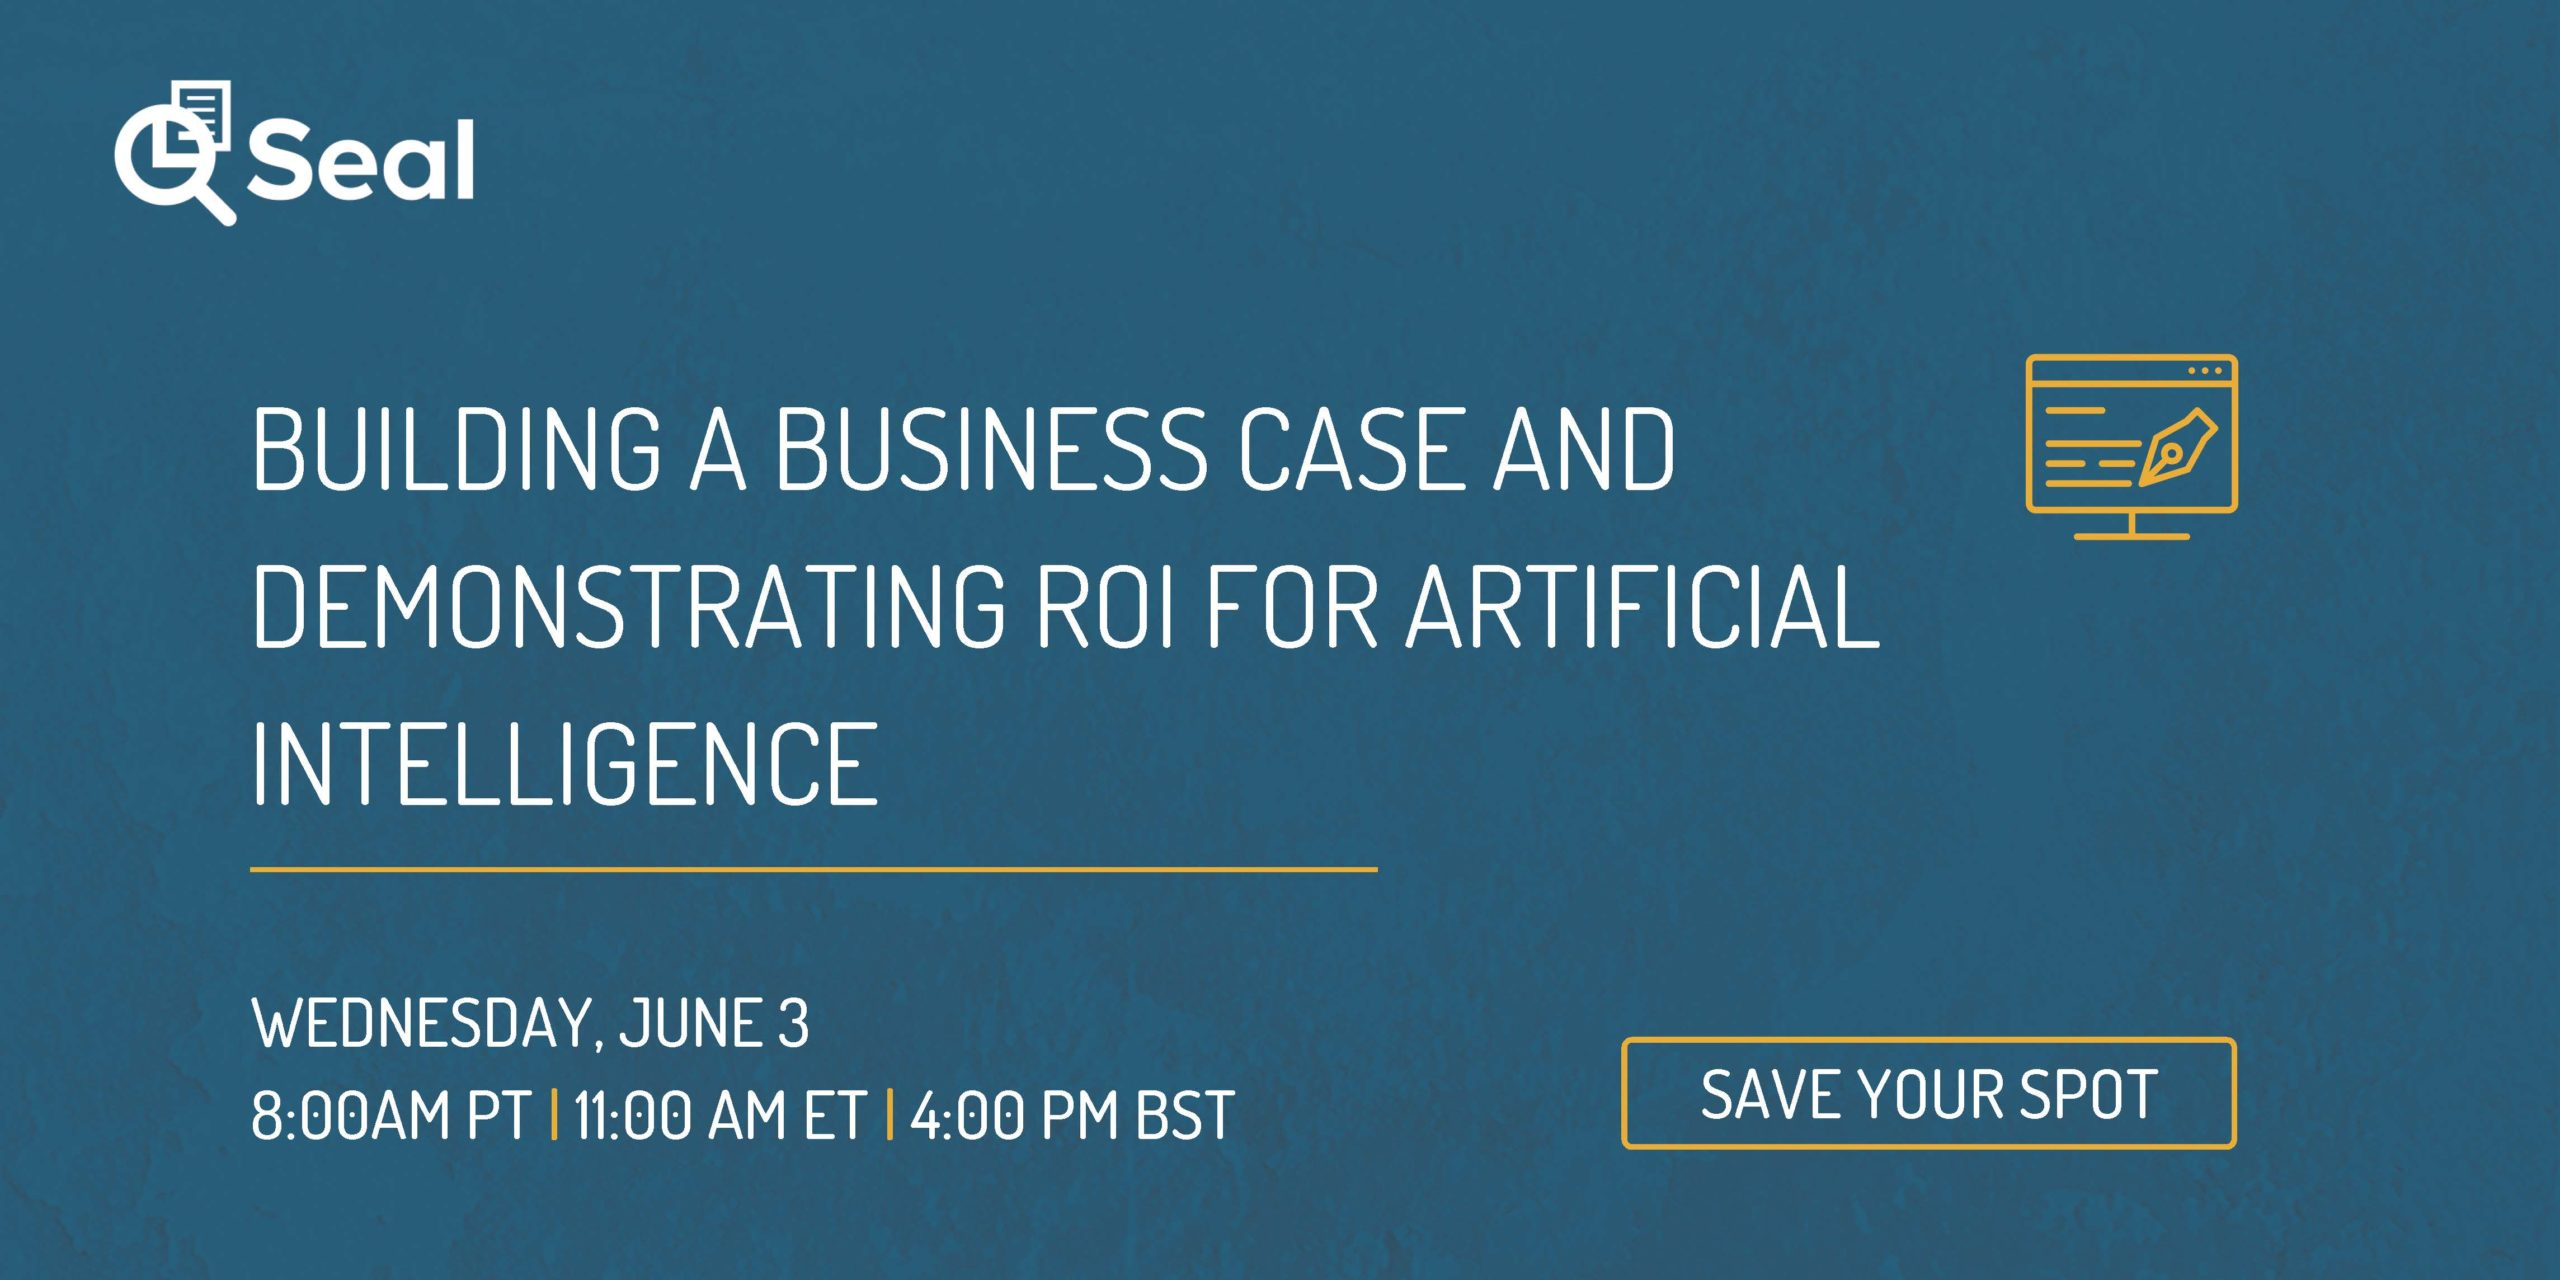 Building a Business Case and Demonstrating ROI for Artificial Intelligence